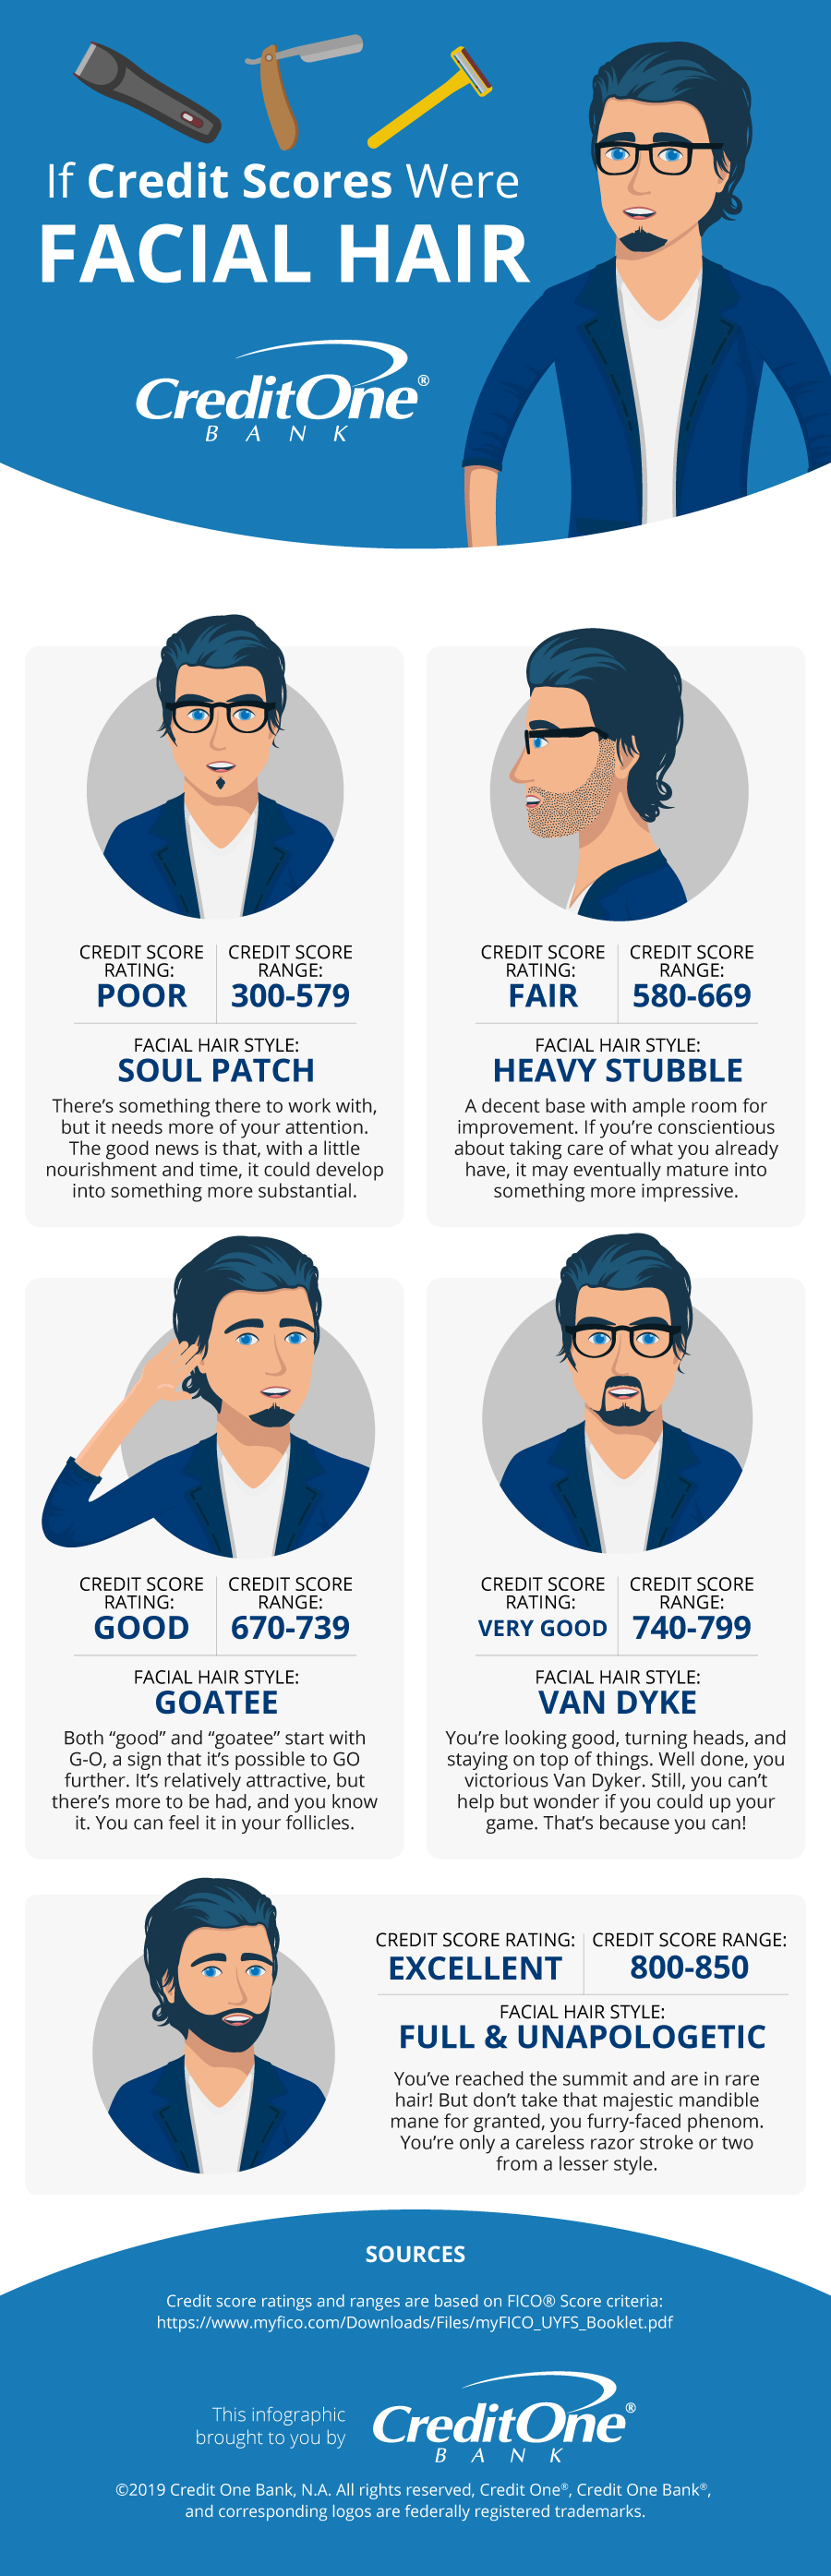 What Kind of Beard Would Your Credit Score Be?